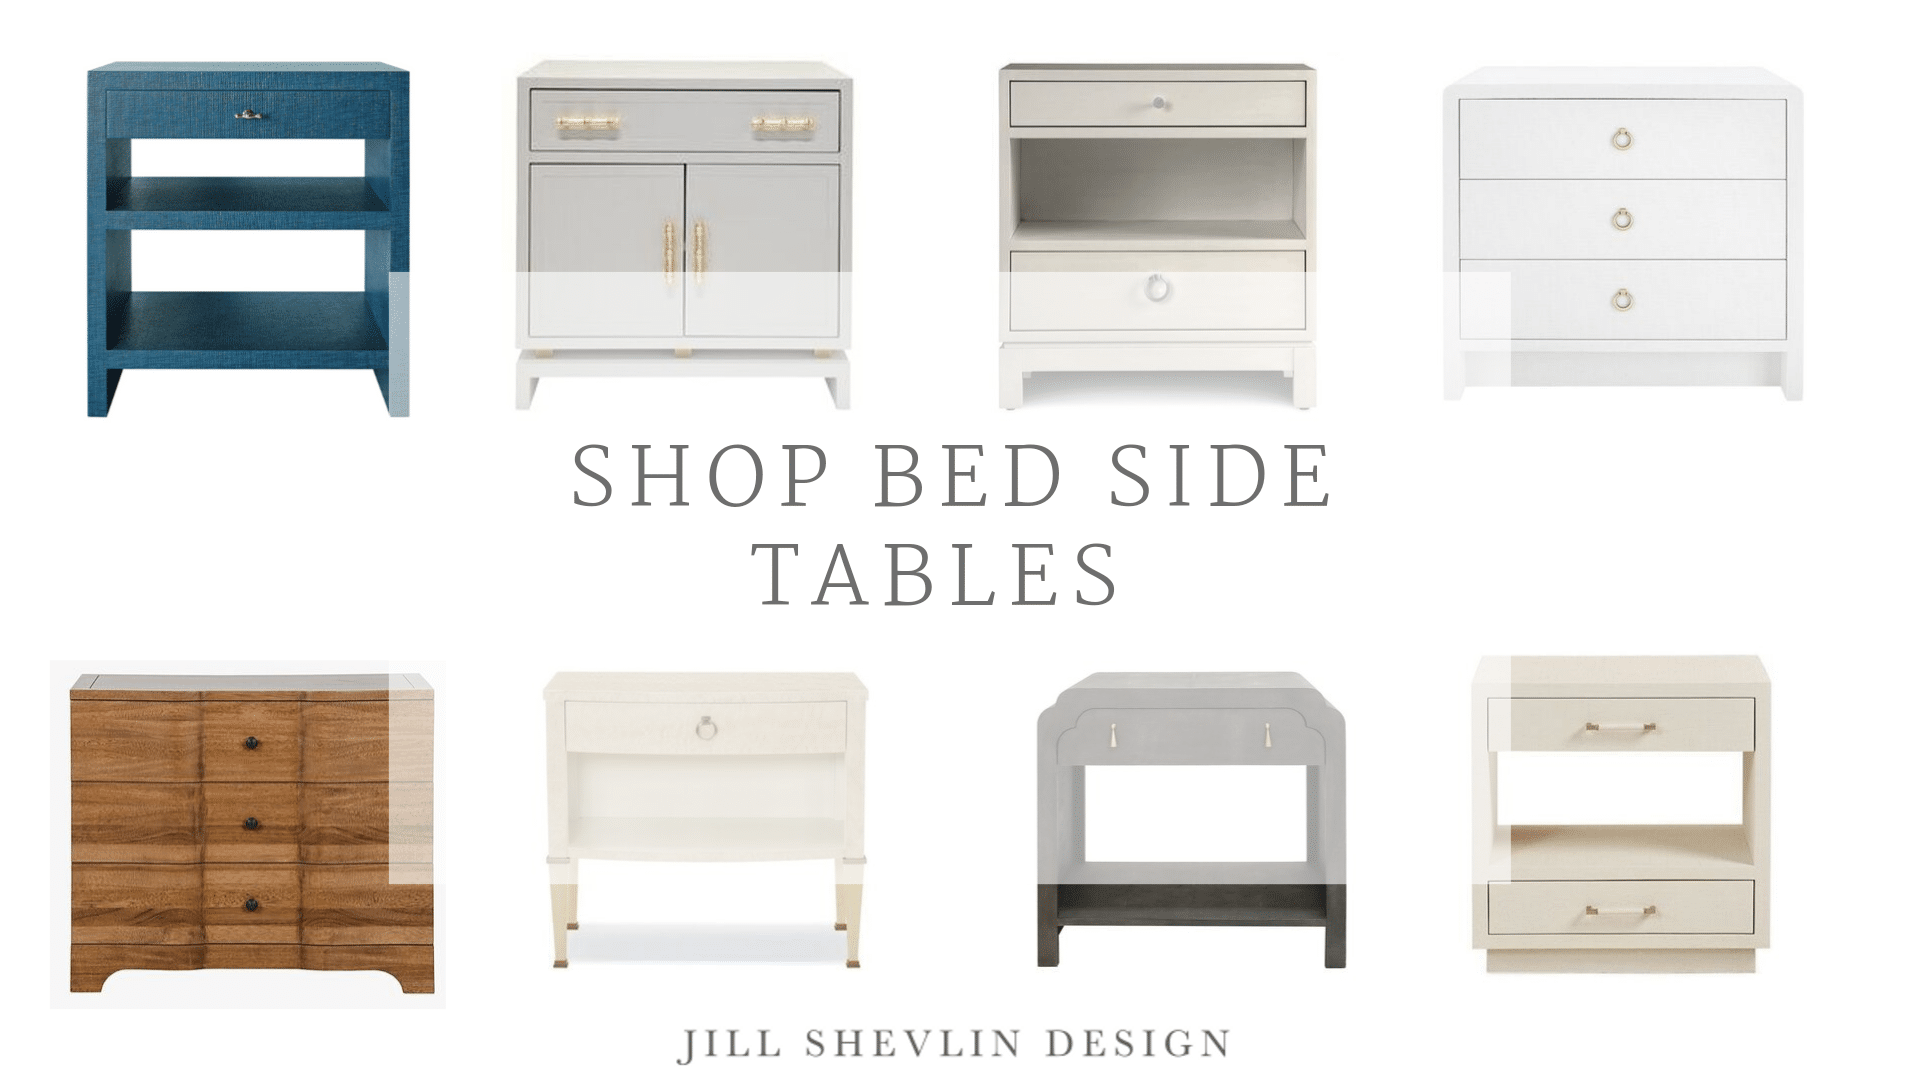 Shop Night Stands Bed side table coastal modern jill shevlin design